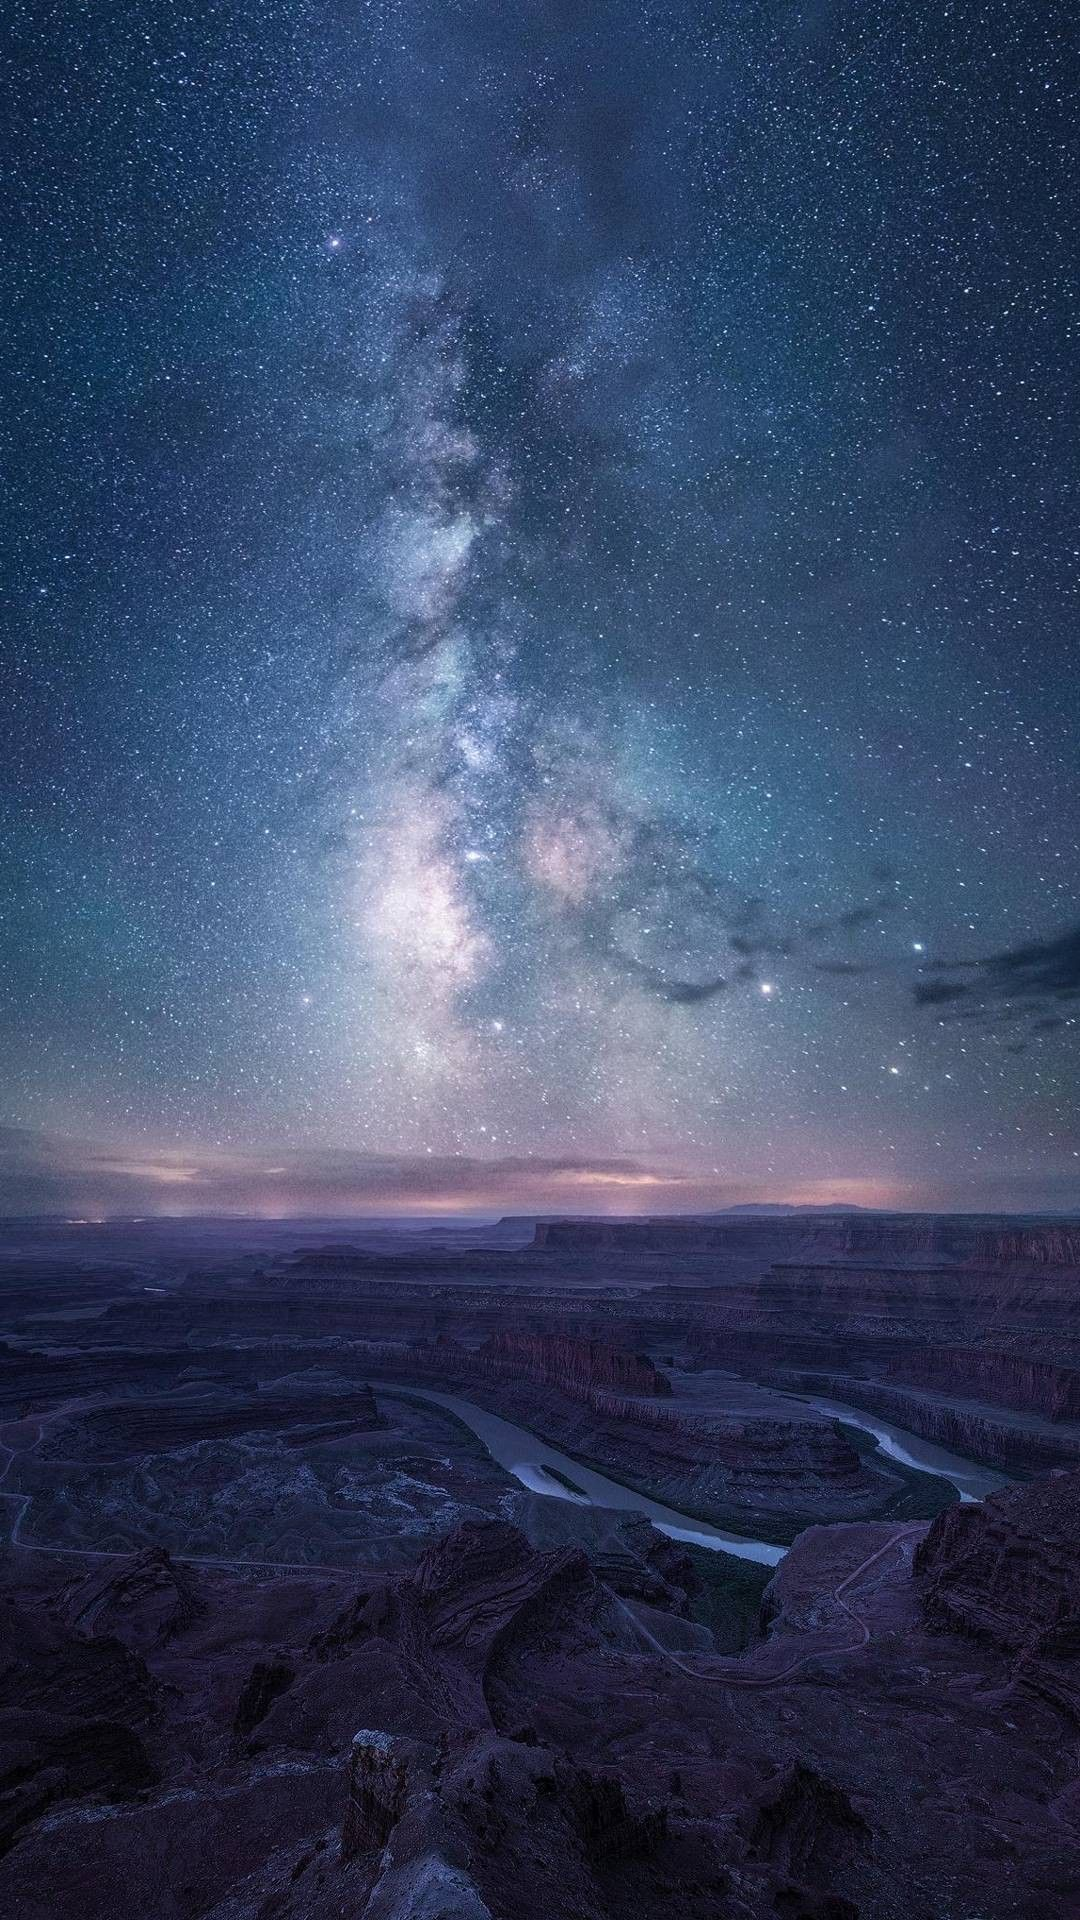 Pin By Daniel Scapes On Astrophotography Night Sky Wallpaper